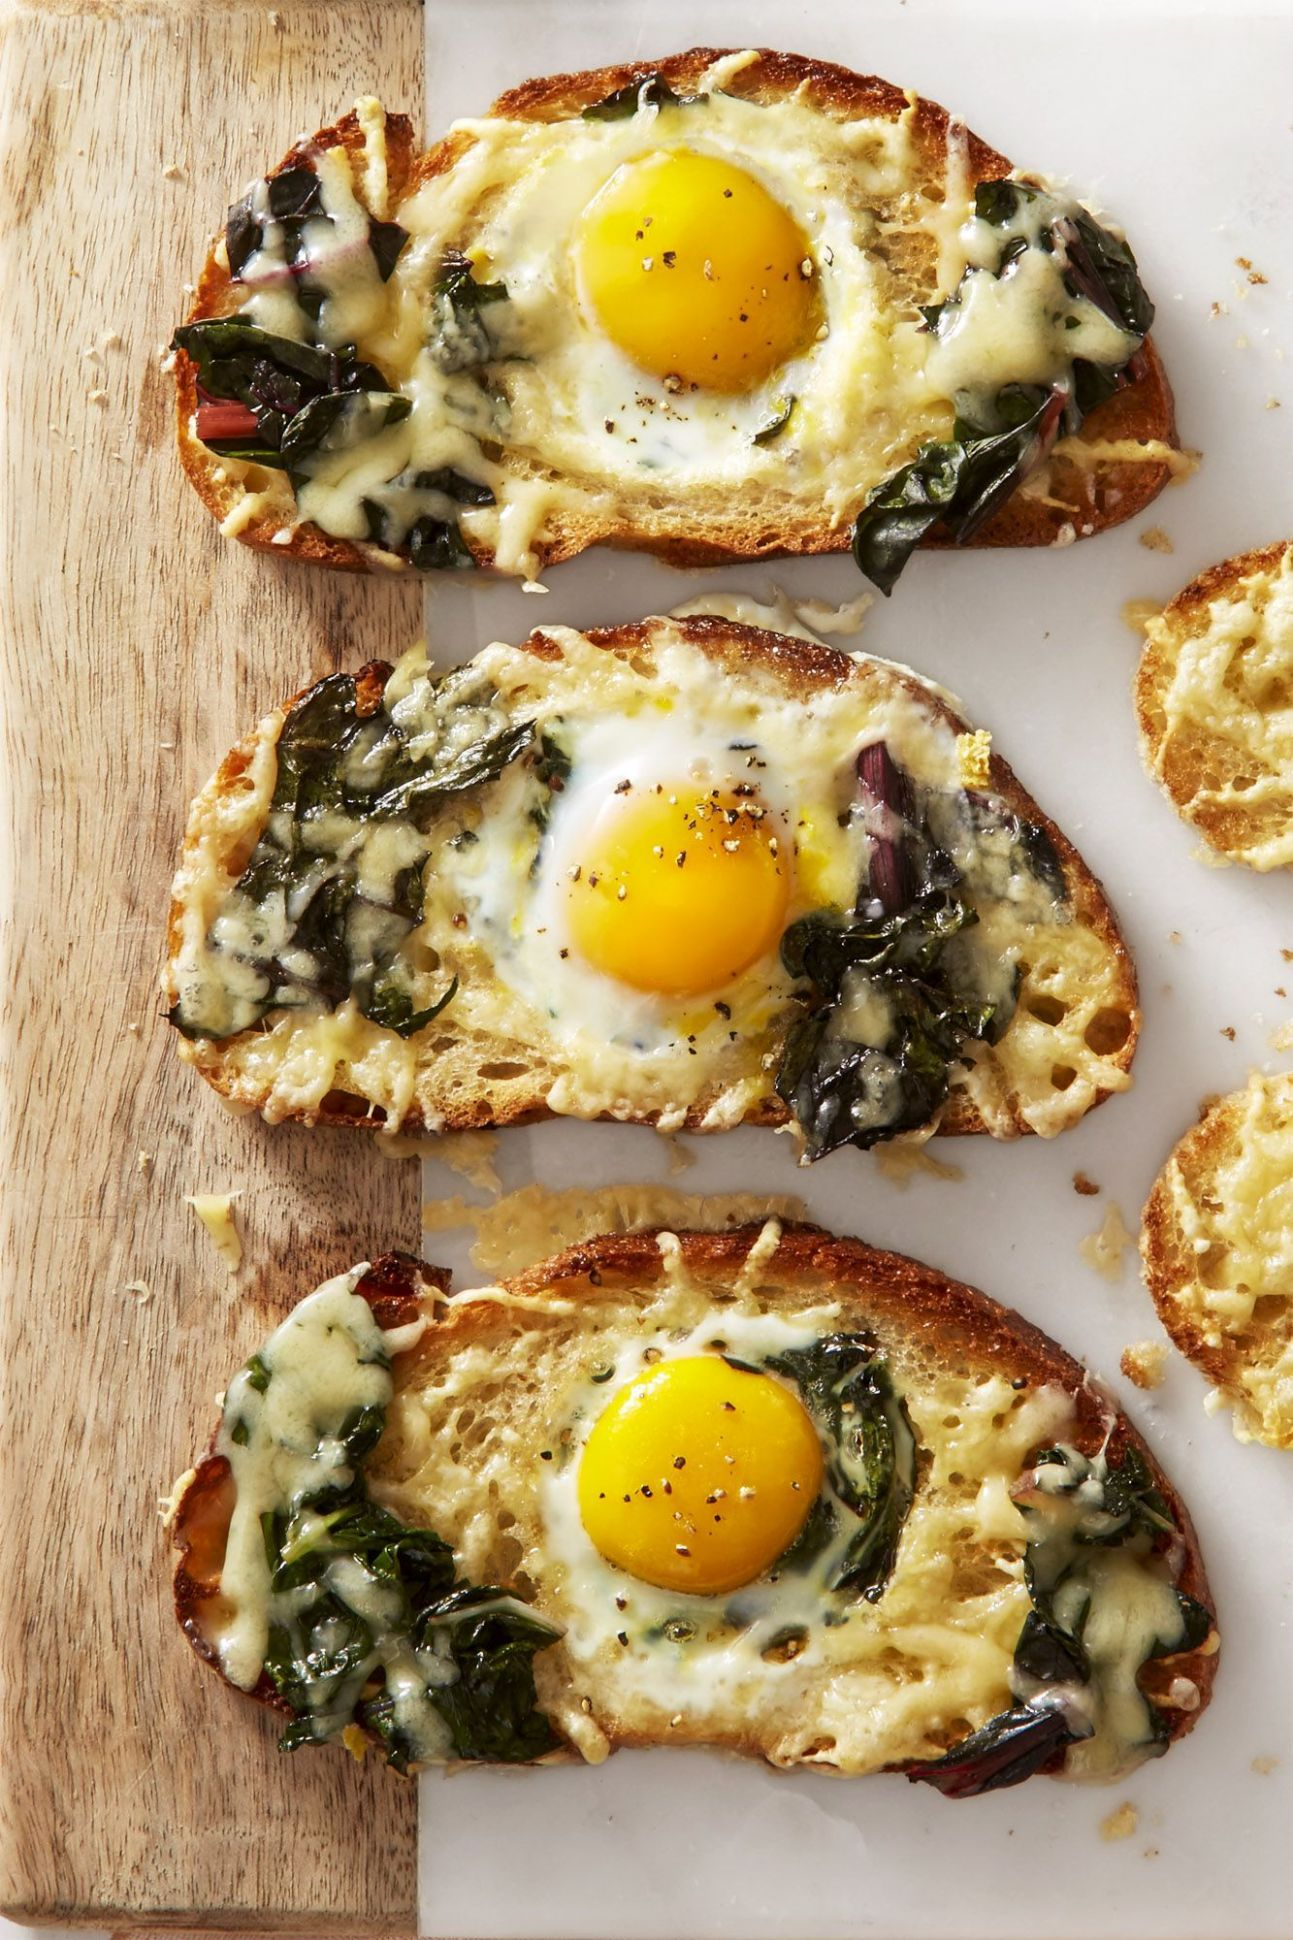 10+ Easy Egg Recipes - Ways to Cook Eggs for Breakfast